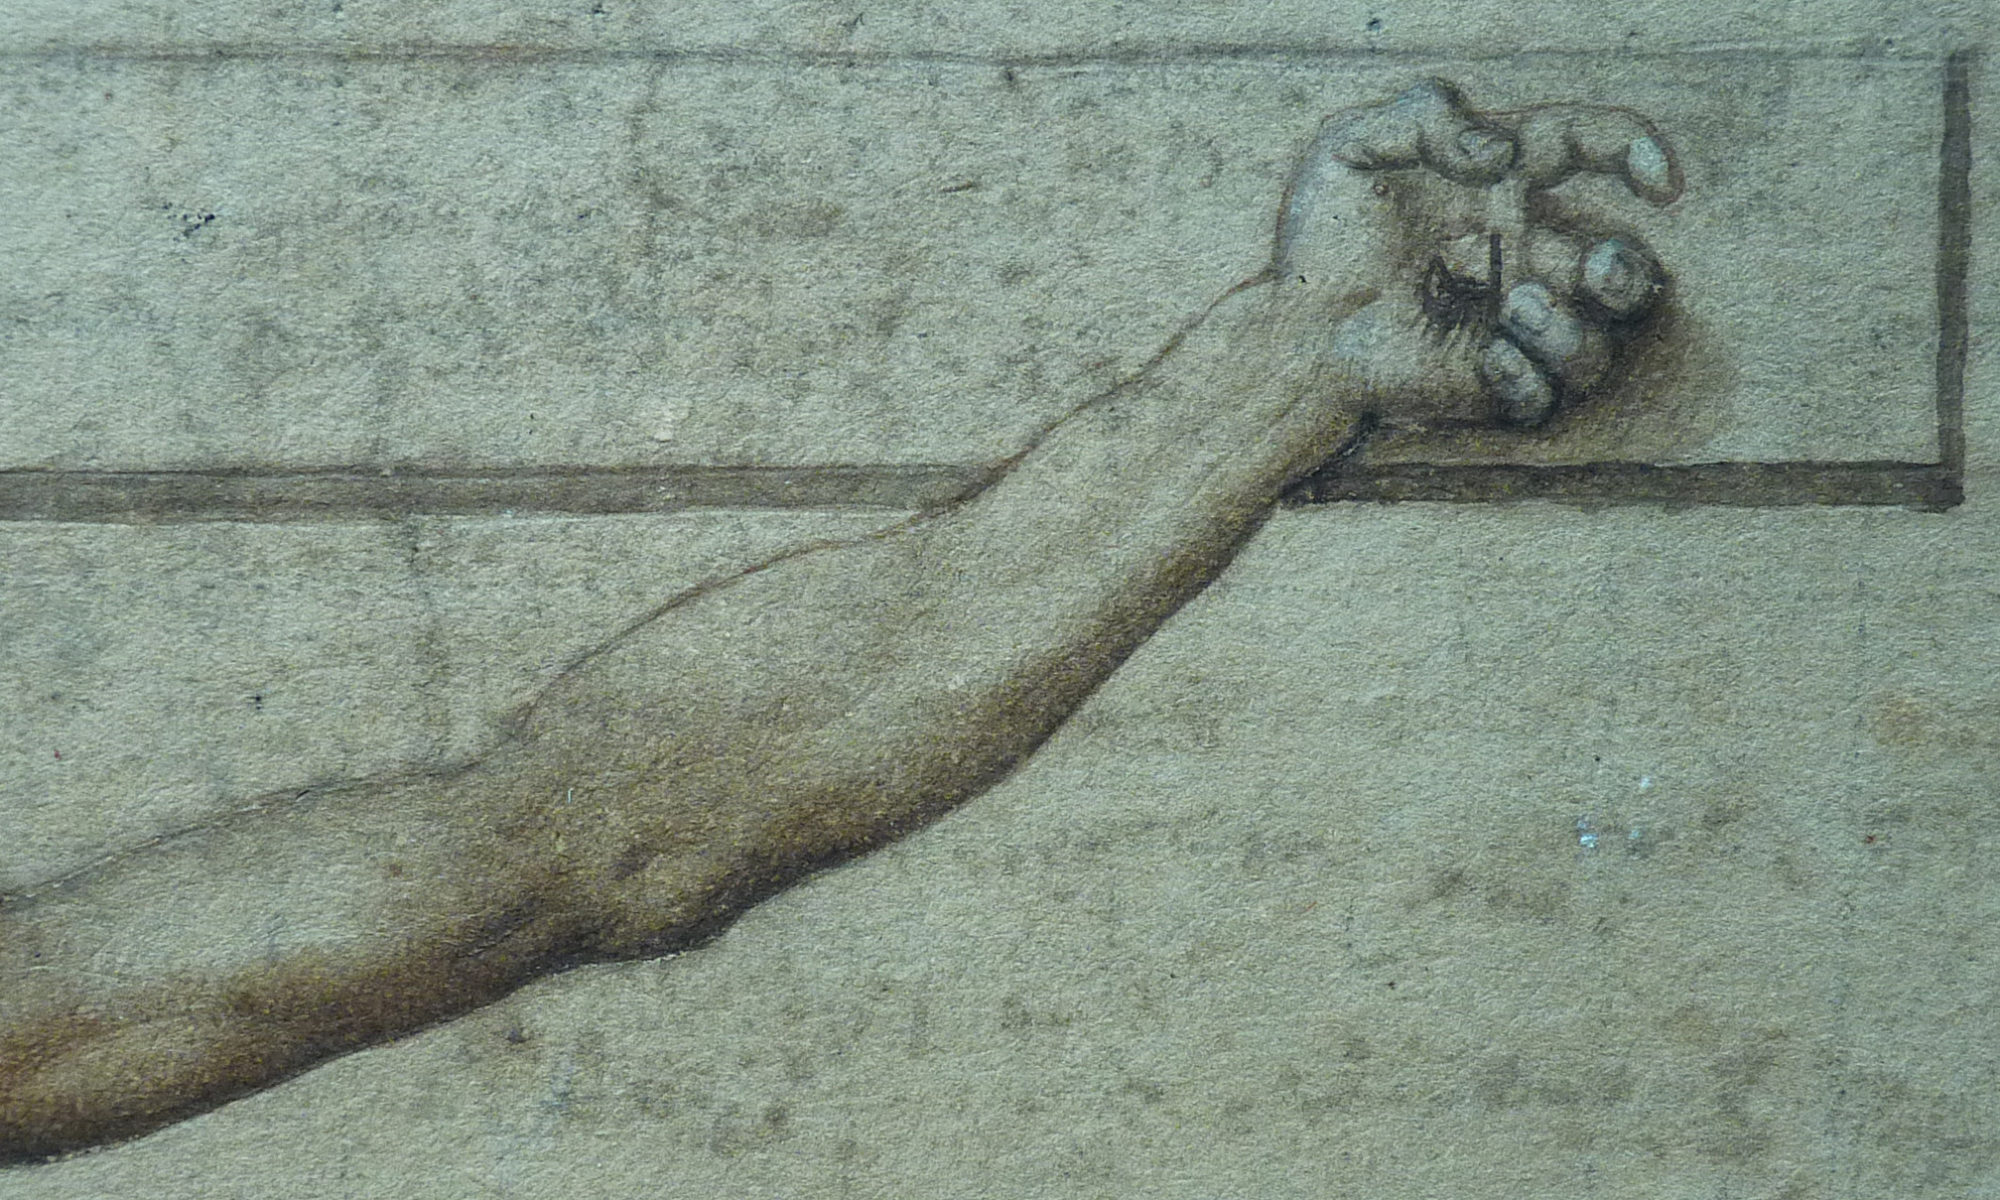 Jesus nailed hand on cross on marble stone